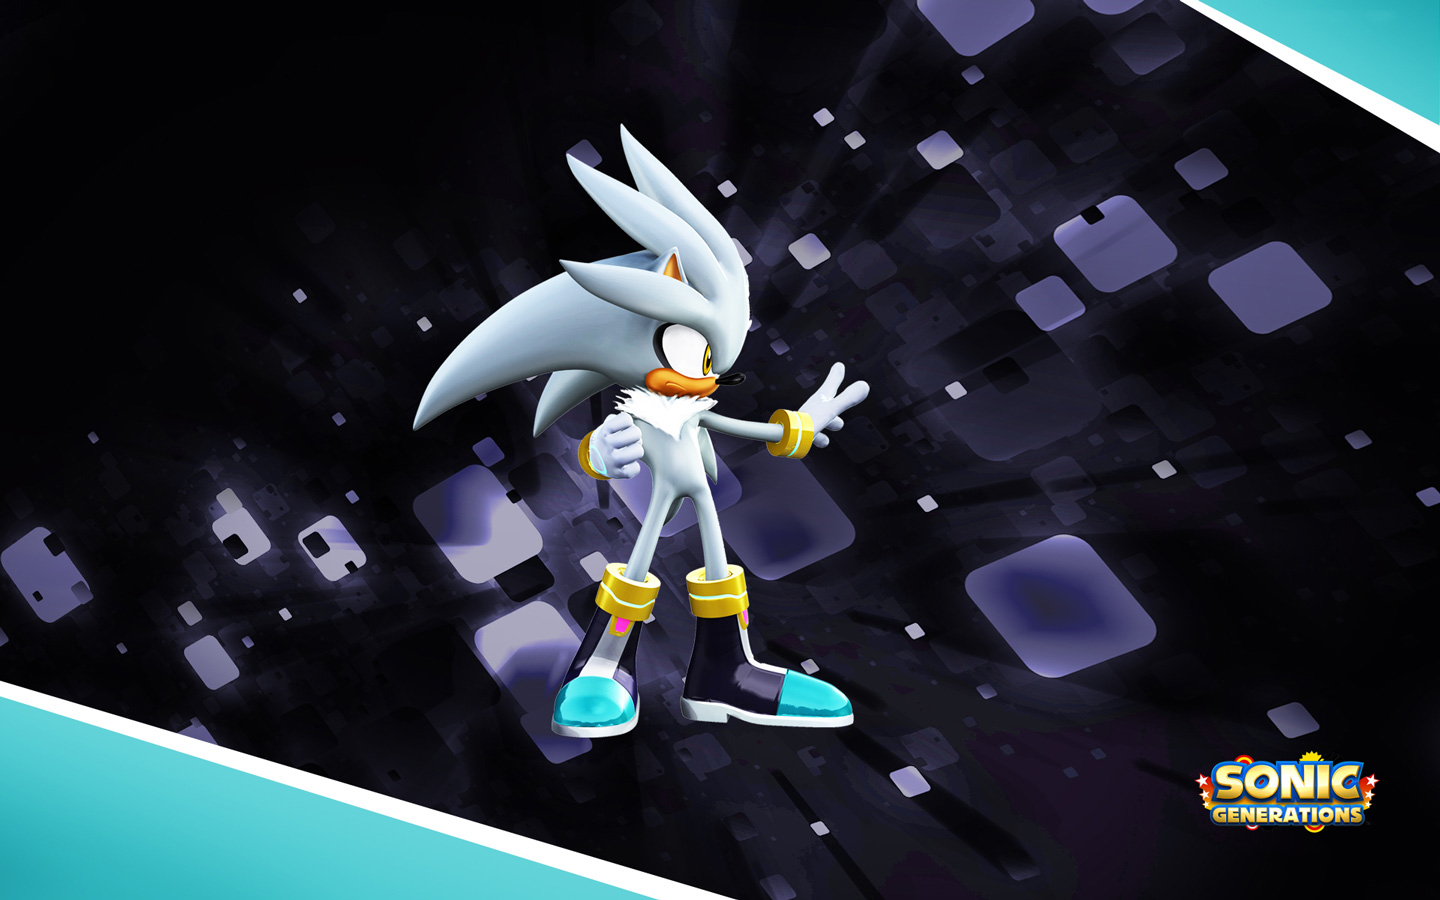 Free Sonic Generations Wallpaper in 1440x900